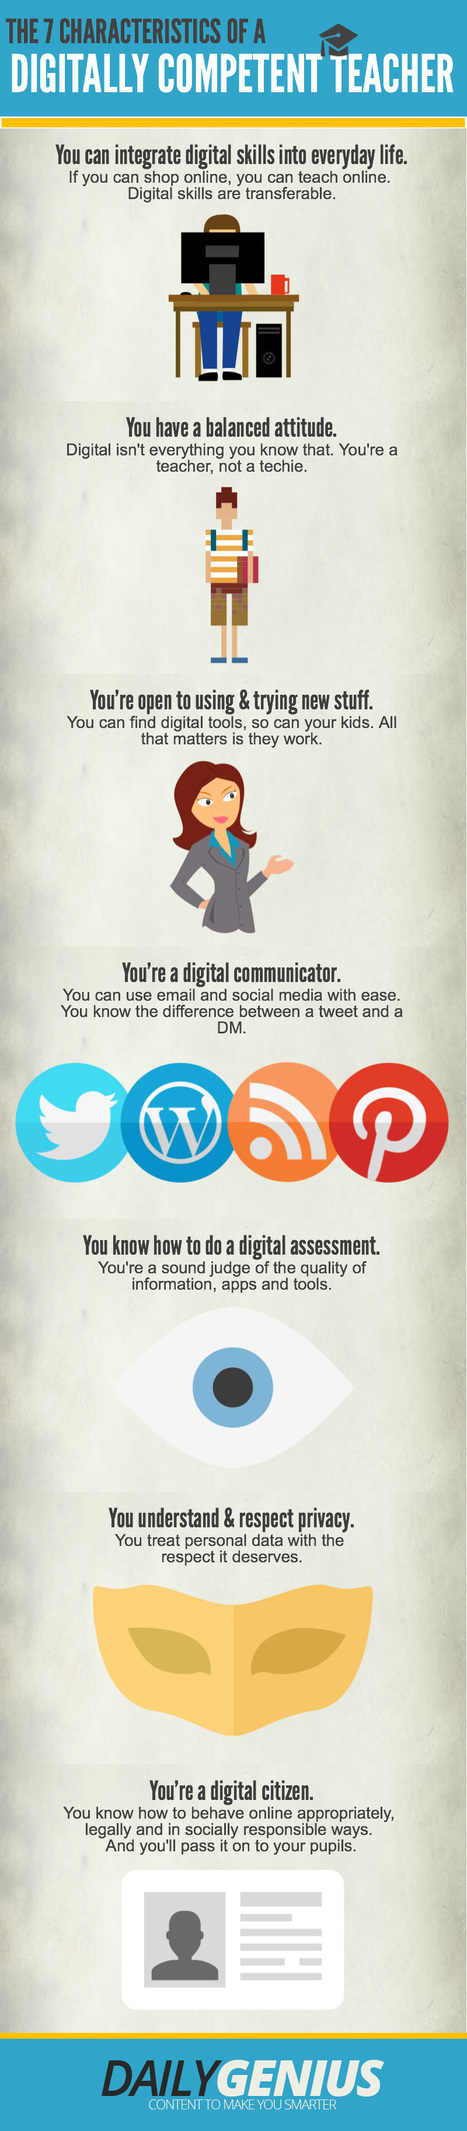 The Characteristics of a Digitally Competent Teacher Infographic | Leader of Pedagogy | Scoop.it